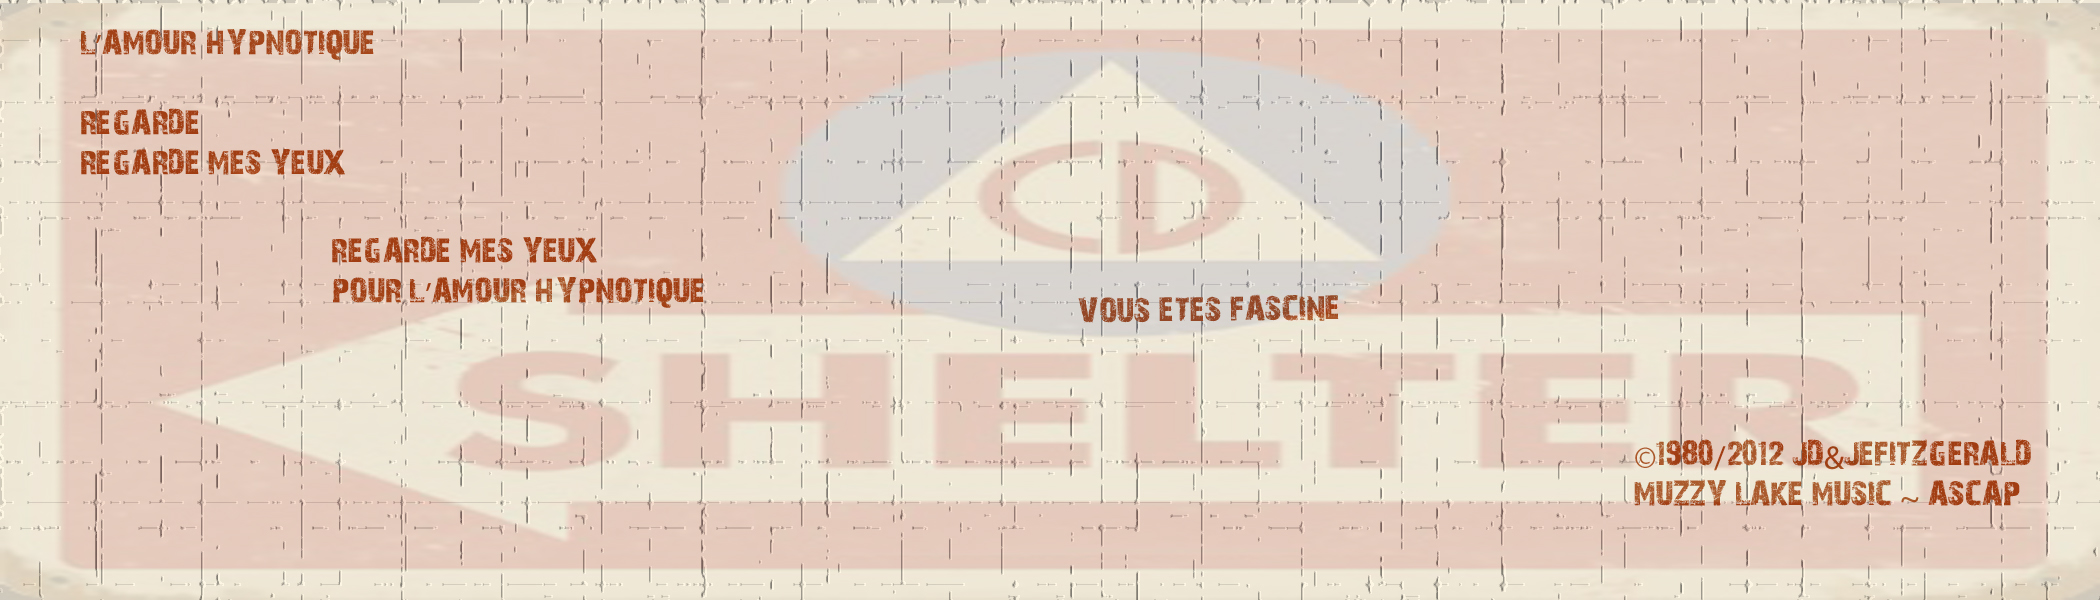 lyric block-horizontal-l'amour hypnotique-sign.jpg